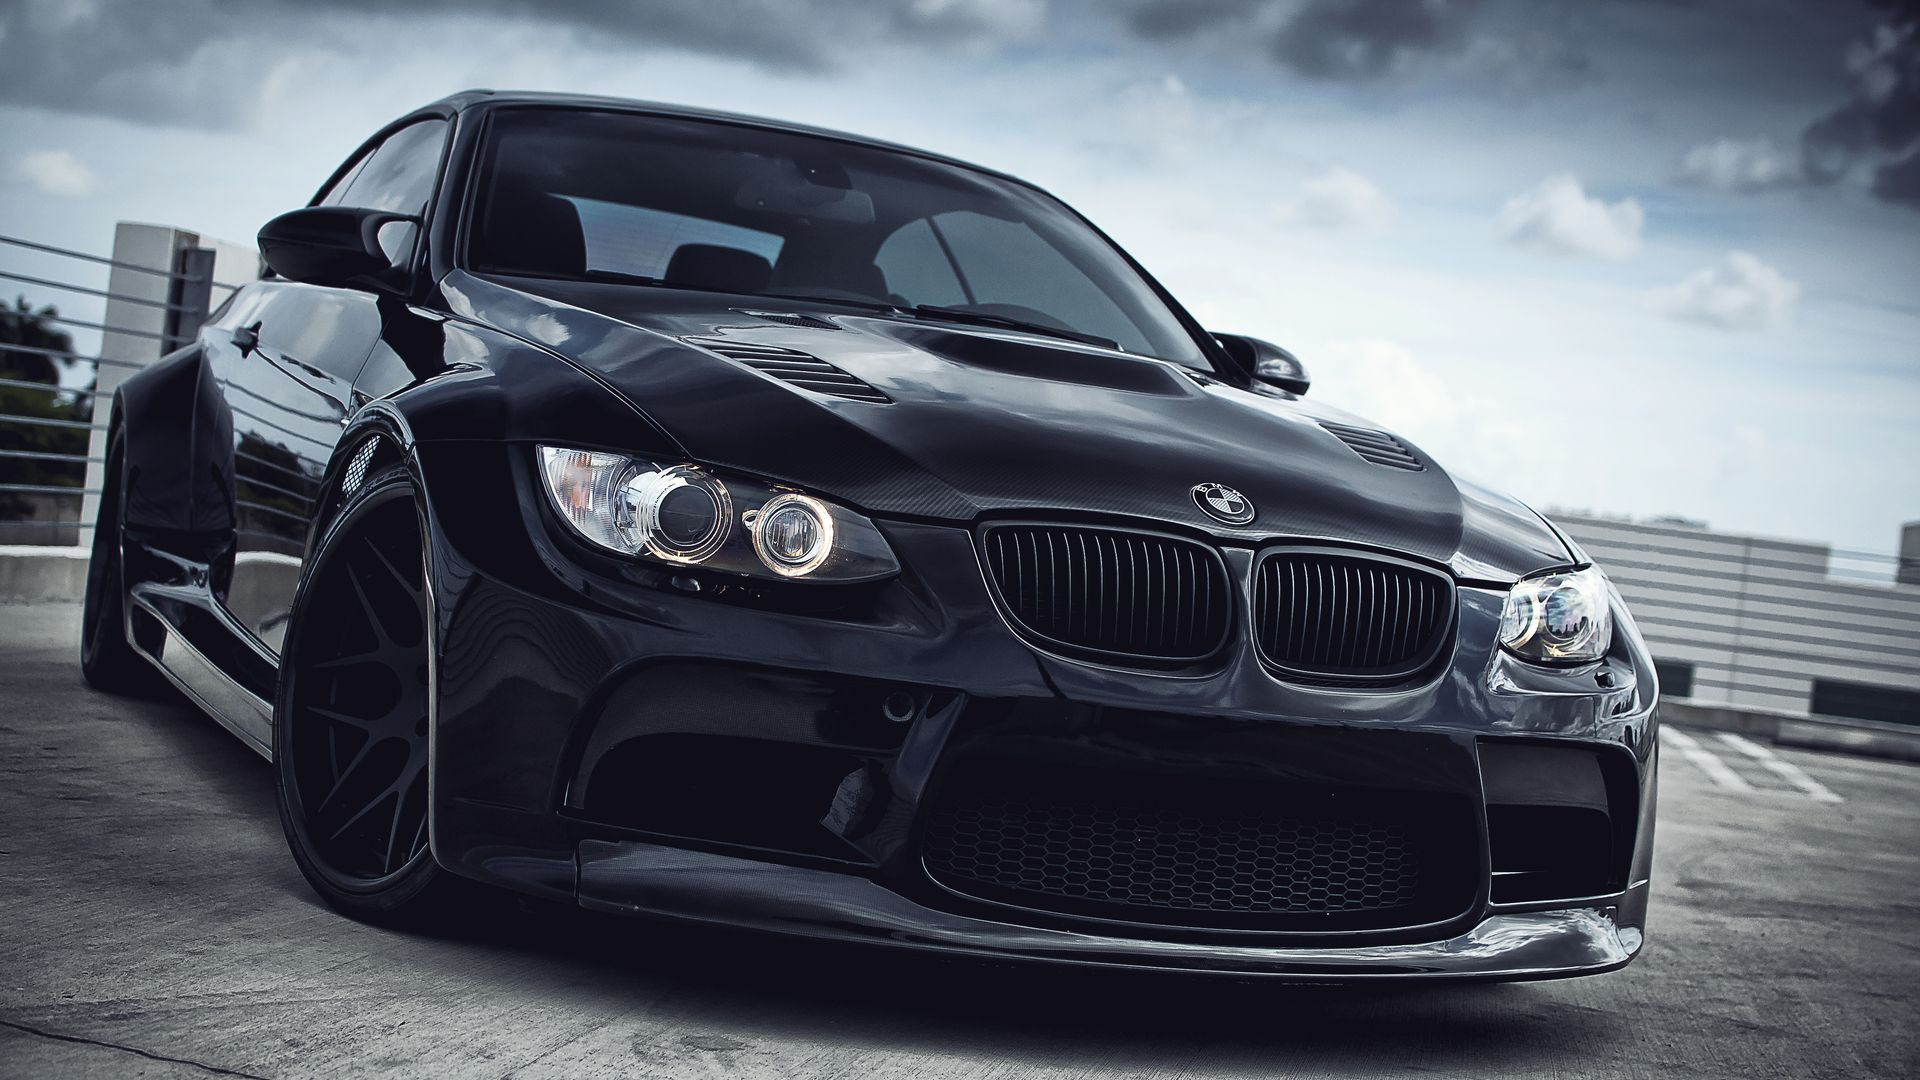 Luxury Bmw Cars Wallpaper Bmw Wallpaper Hd Download Cars And